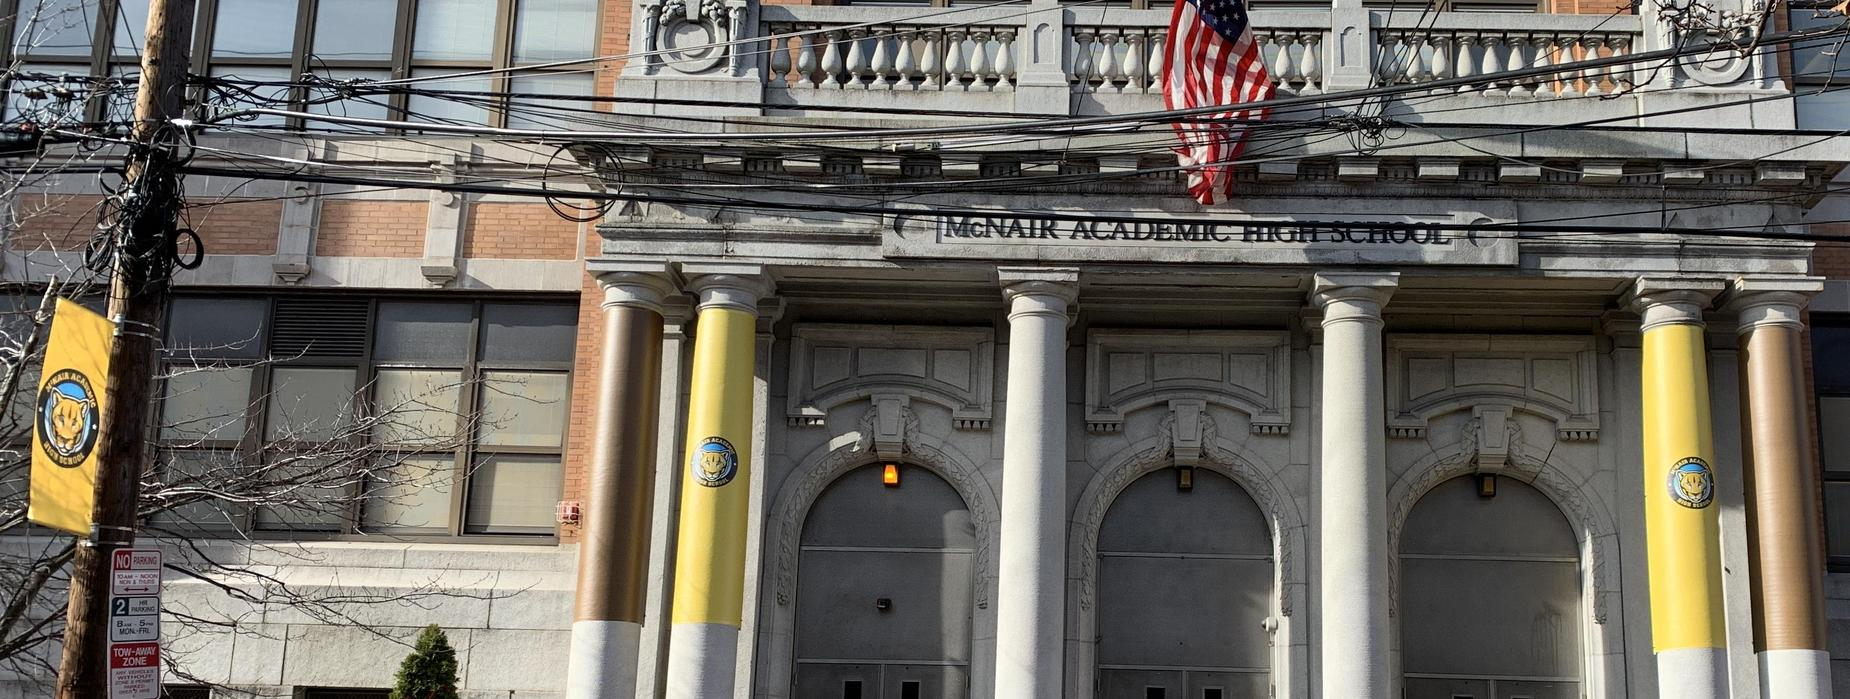 Banners and front of building